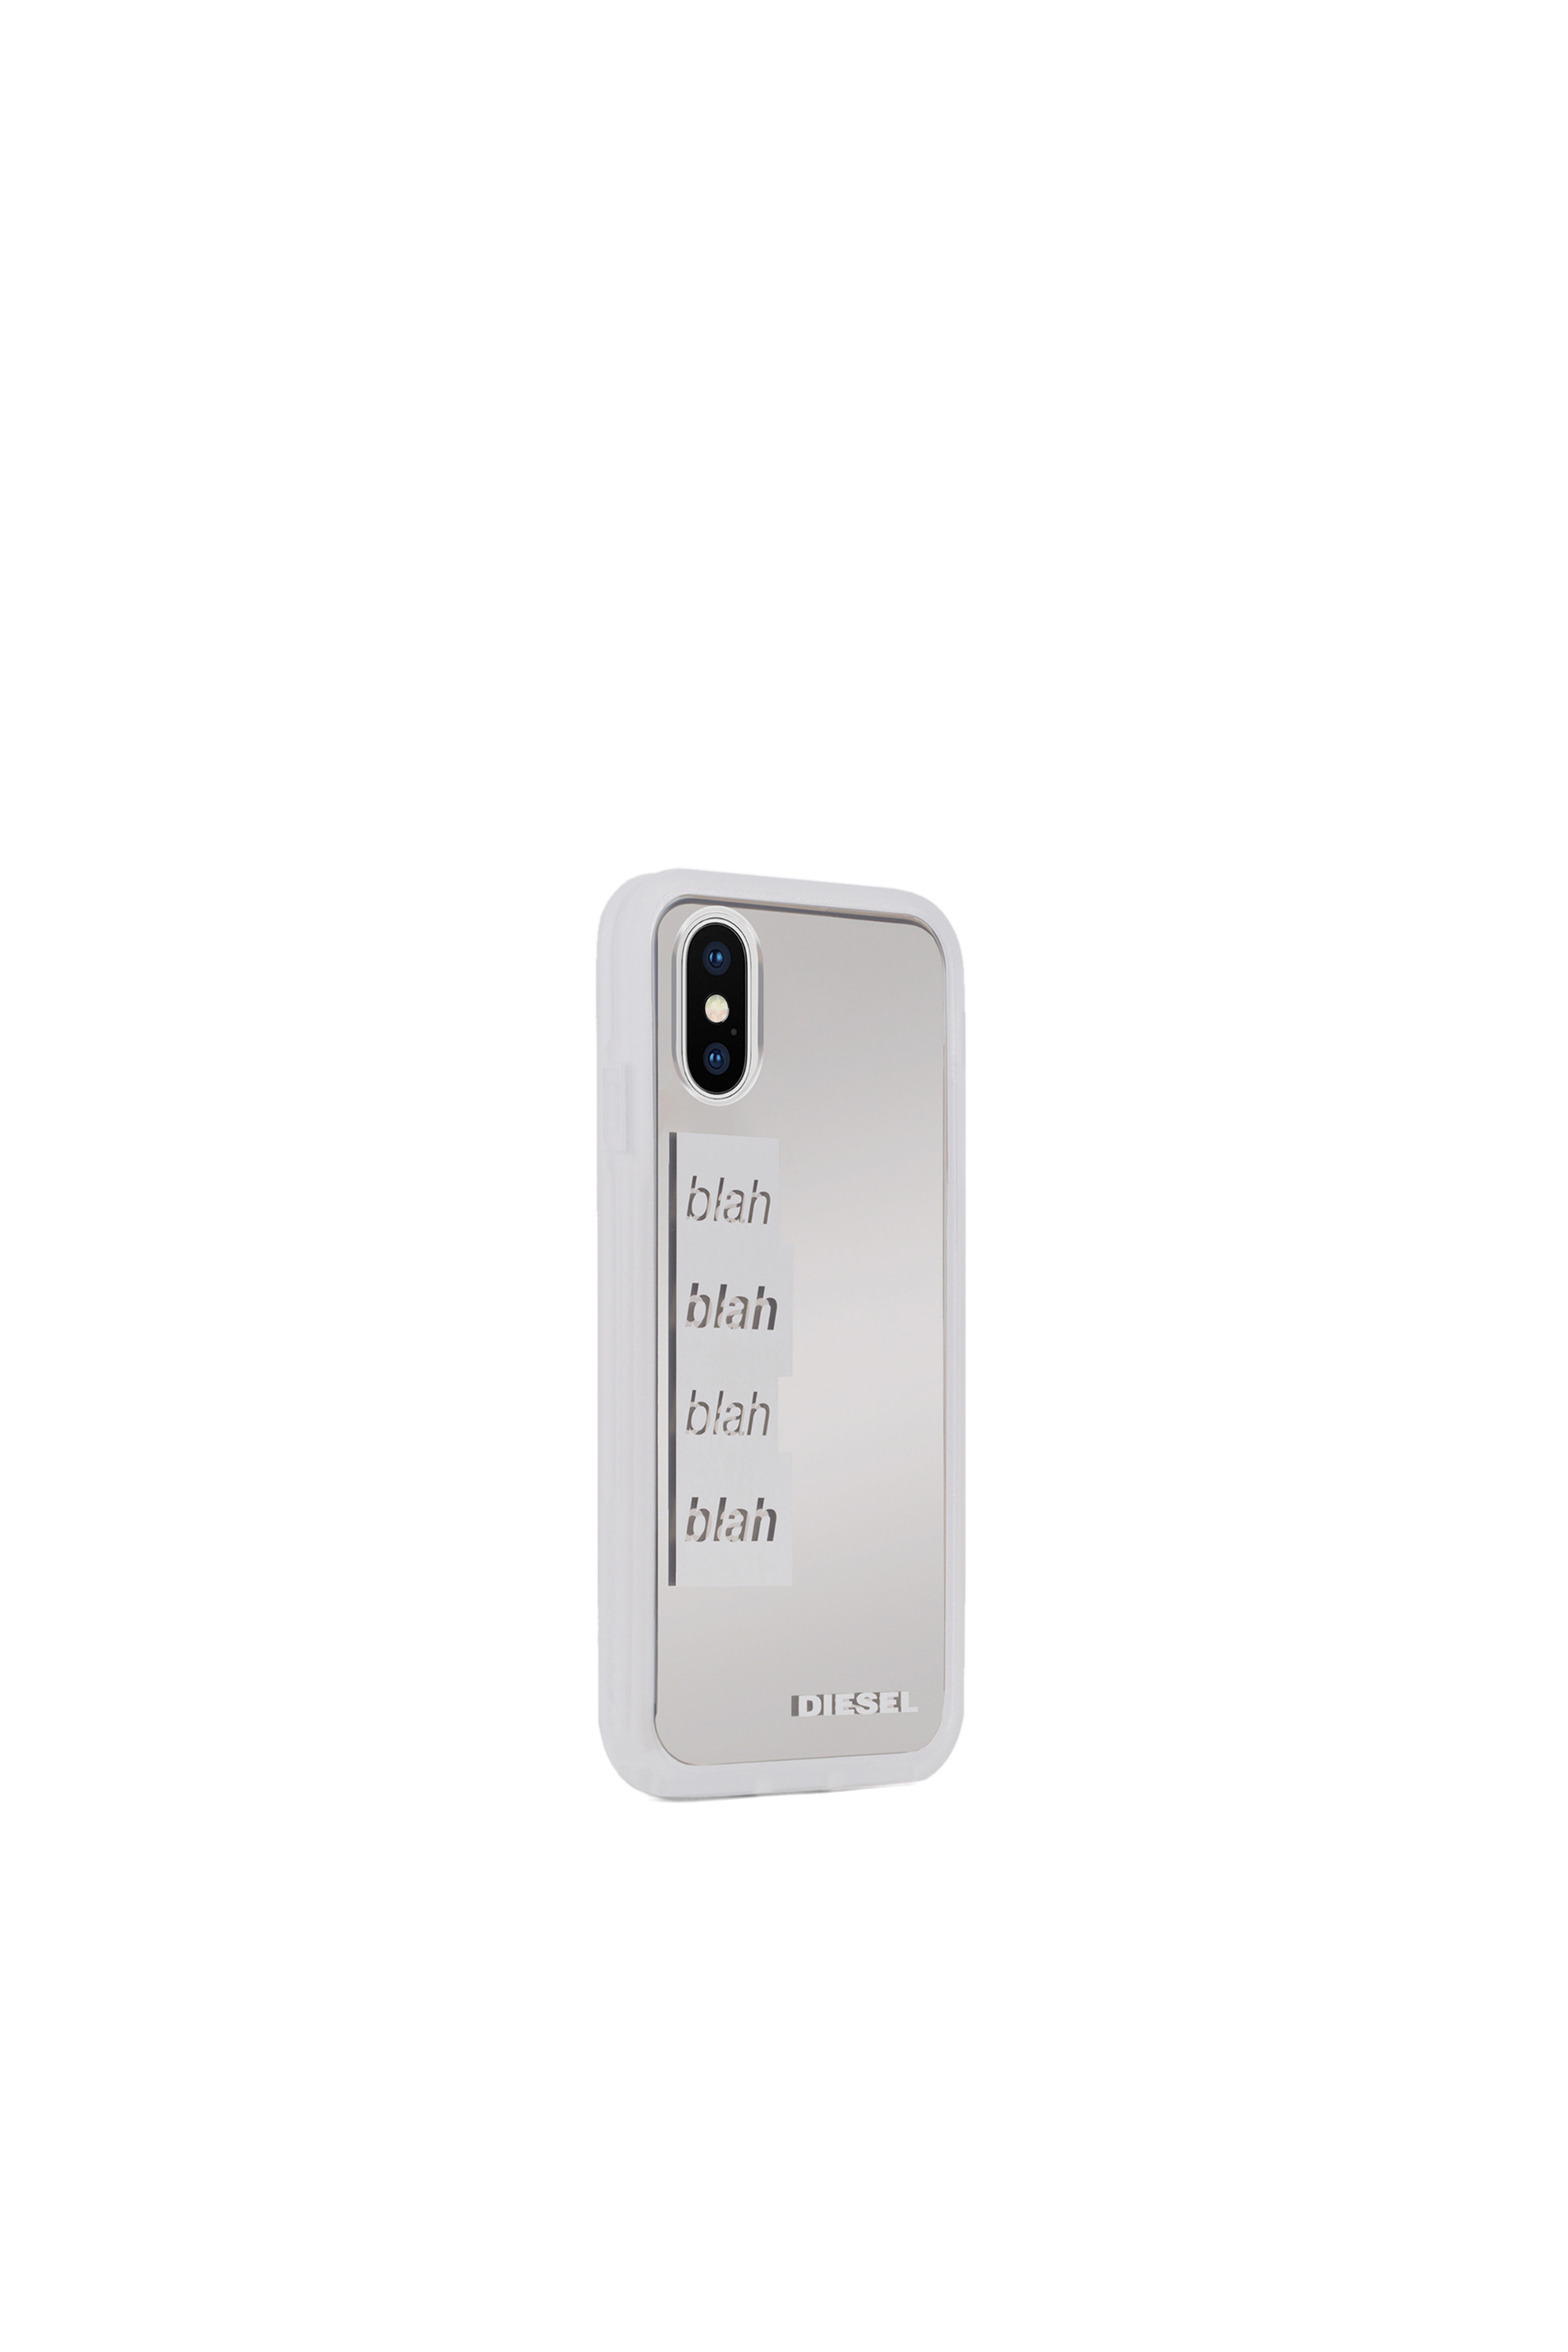 Diesel - BLAH BLAH BLAH IPHONE X CASE,  - Cases - Image 6